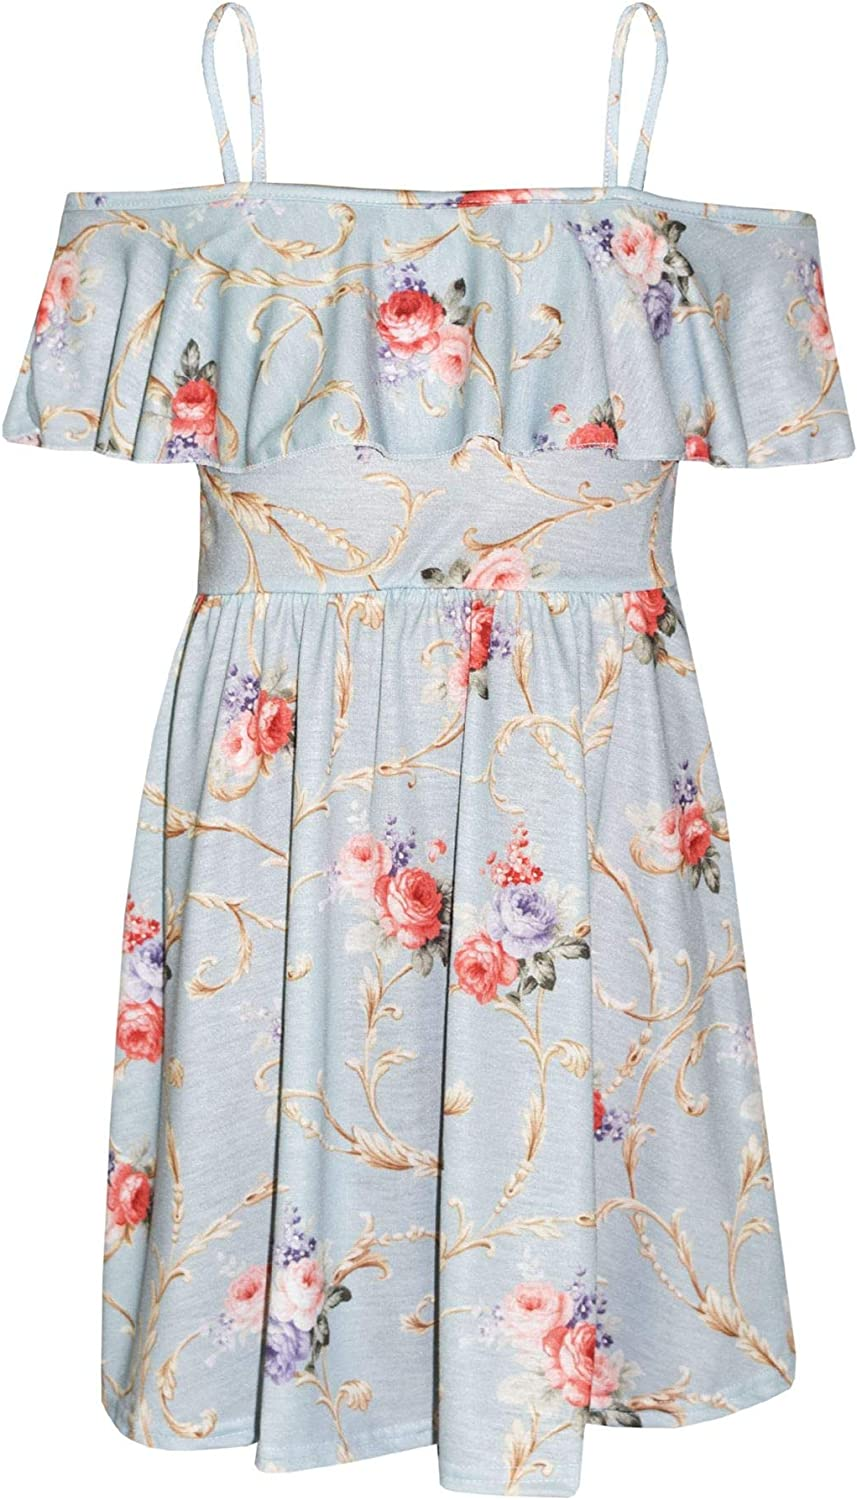 Fashion Girls Skater Dress Kids Floral Print Summer Party Dresses Age 6-12 Years